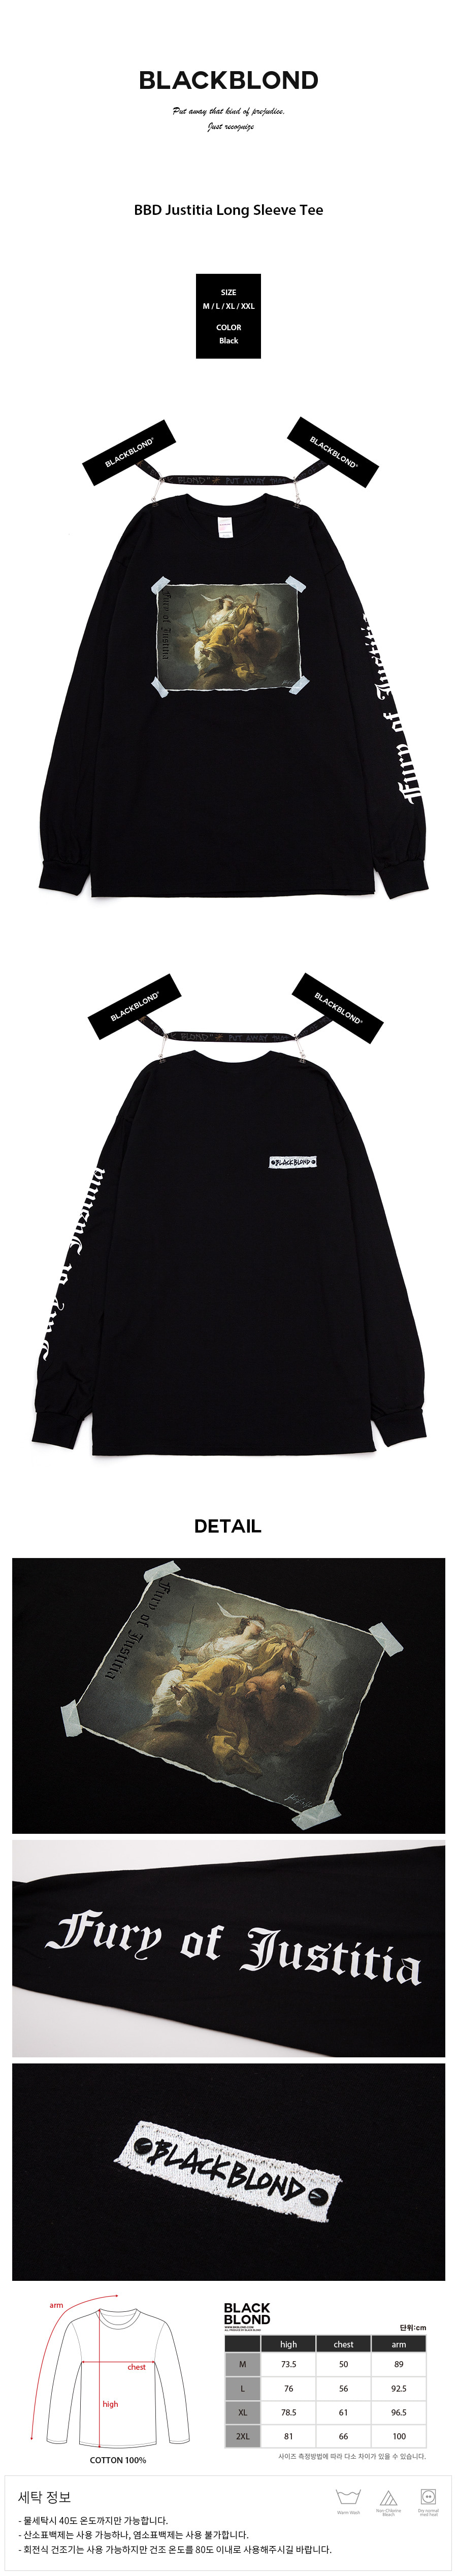 BLACKBLOND - BBD Justitia Long Sleeve Tee (Black)